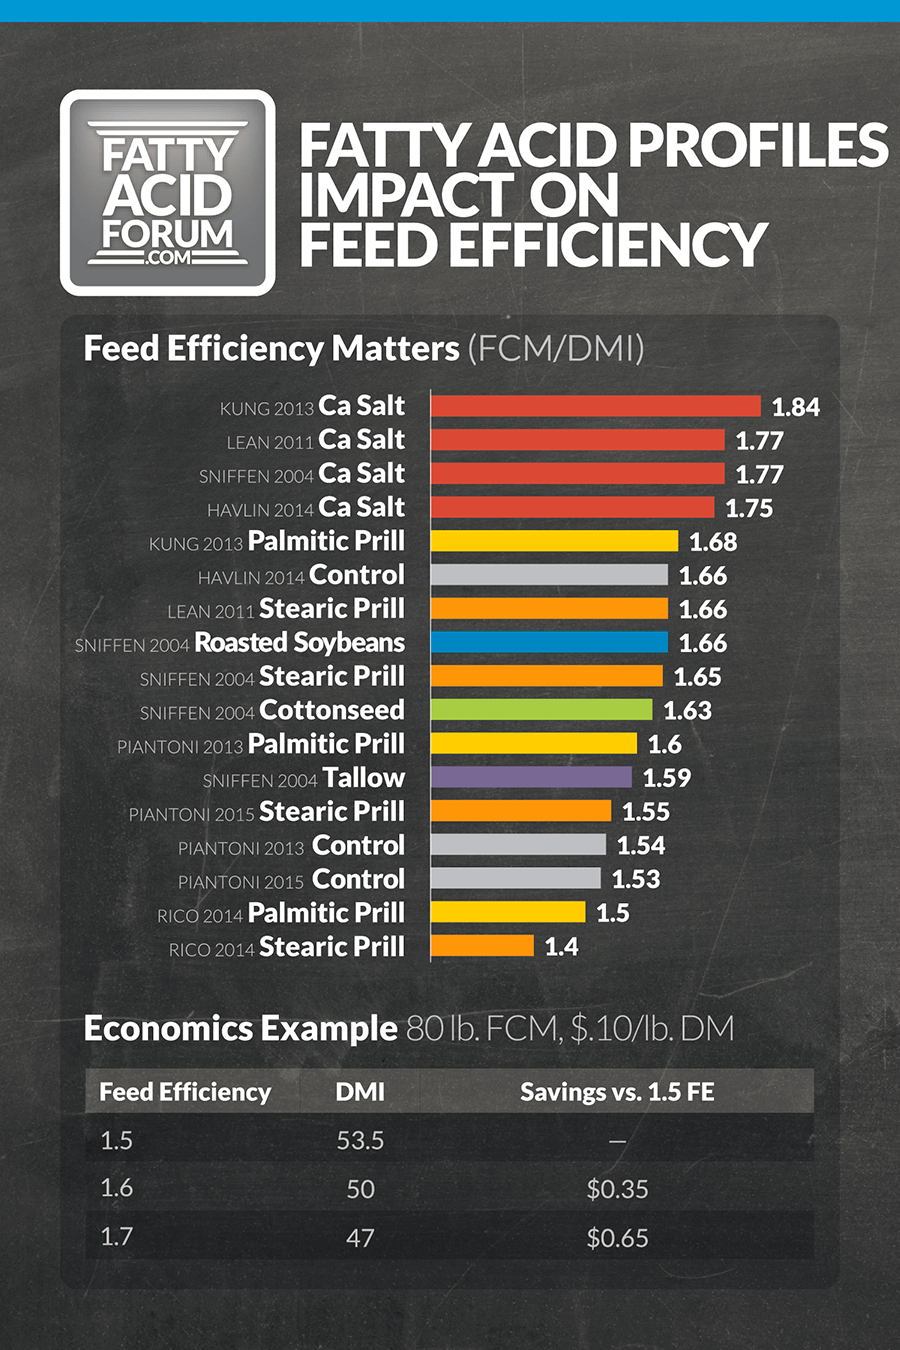 Fatty Acid Profiles Impact on Feed Efficiency